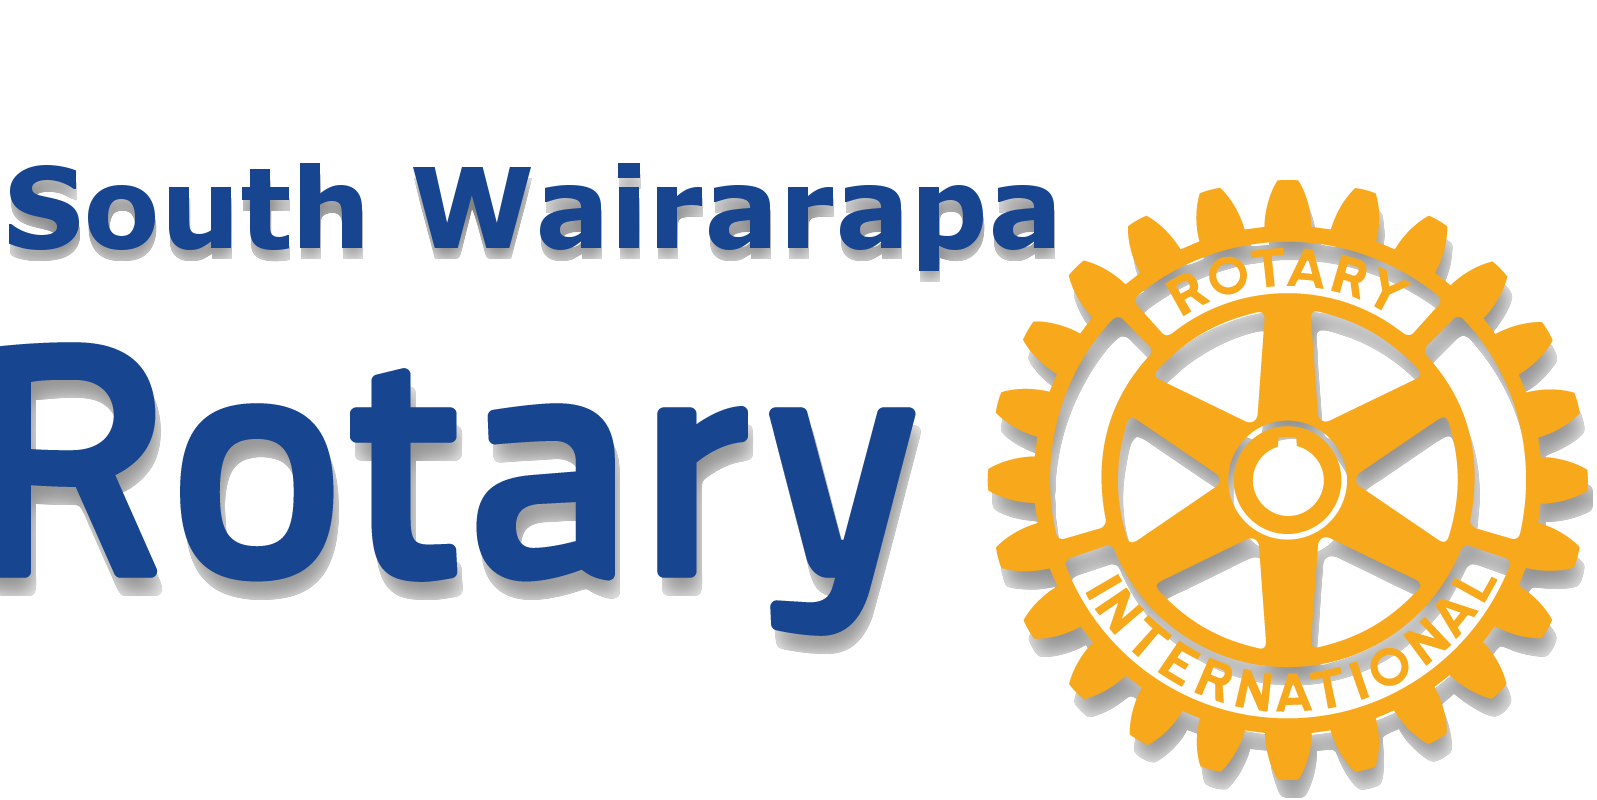 South Wairarapa Rotary